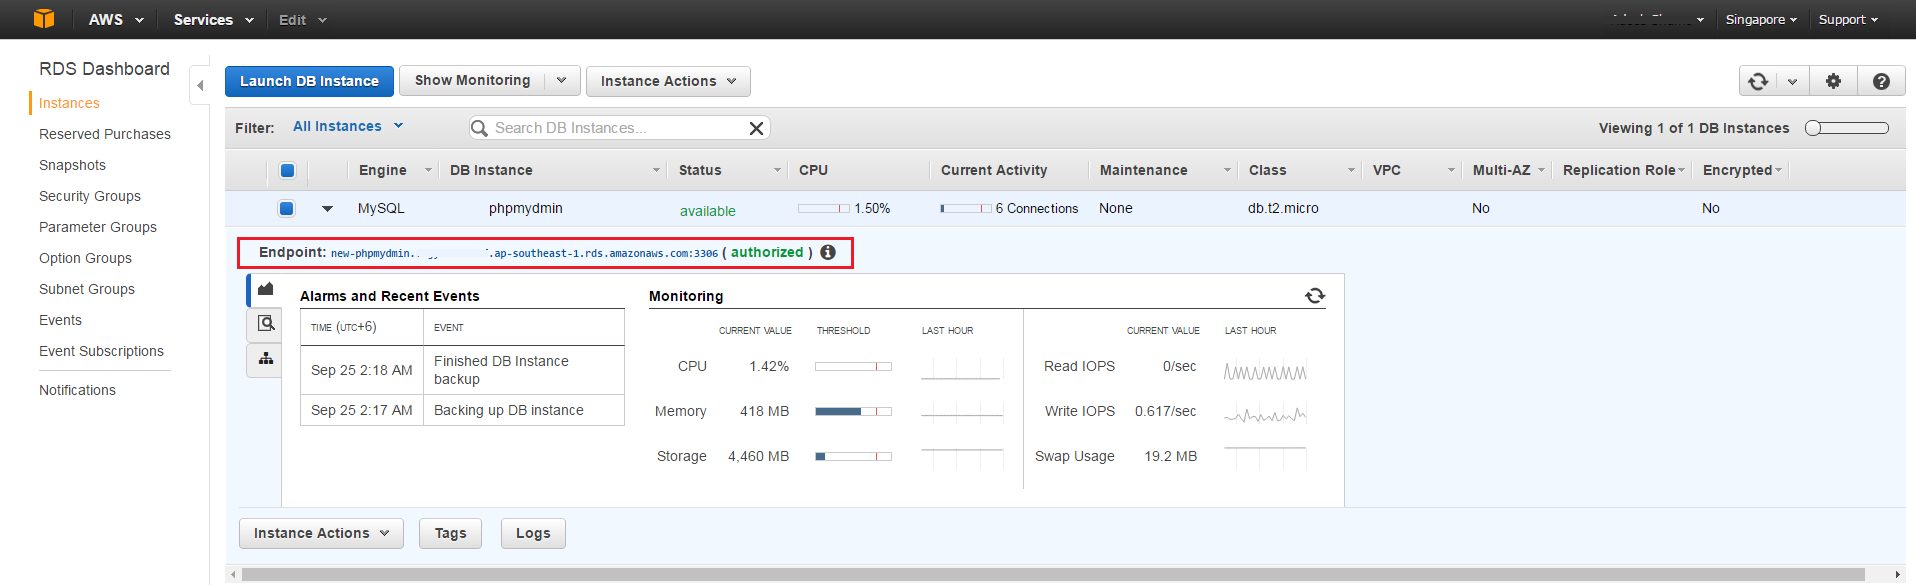 How to get started with Amazon Web Services: Part 3 : The